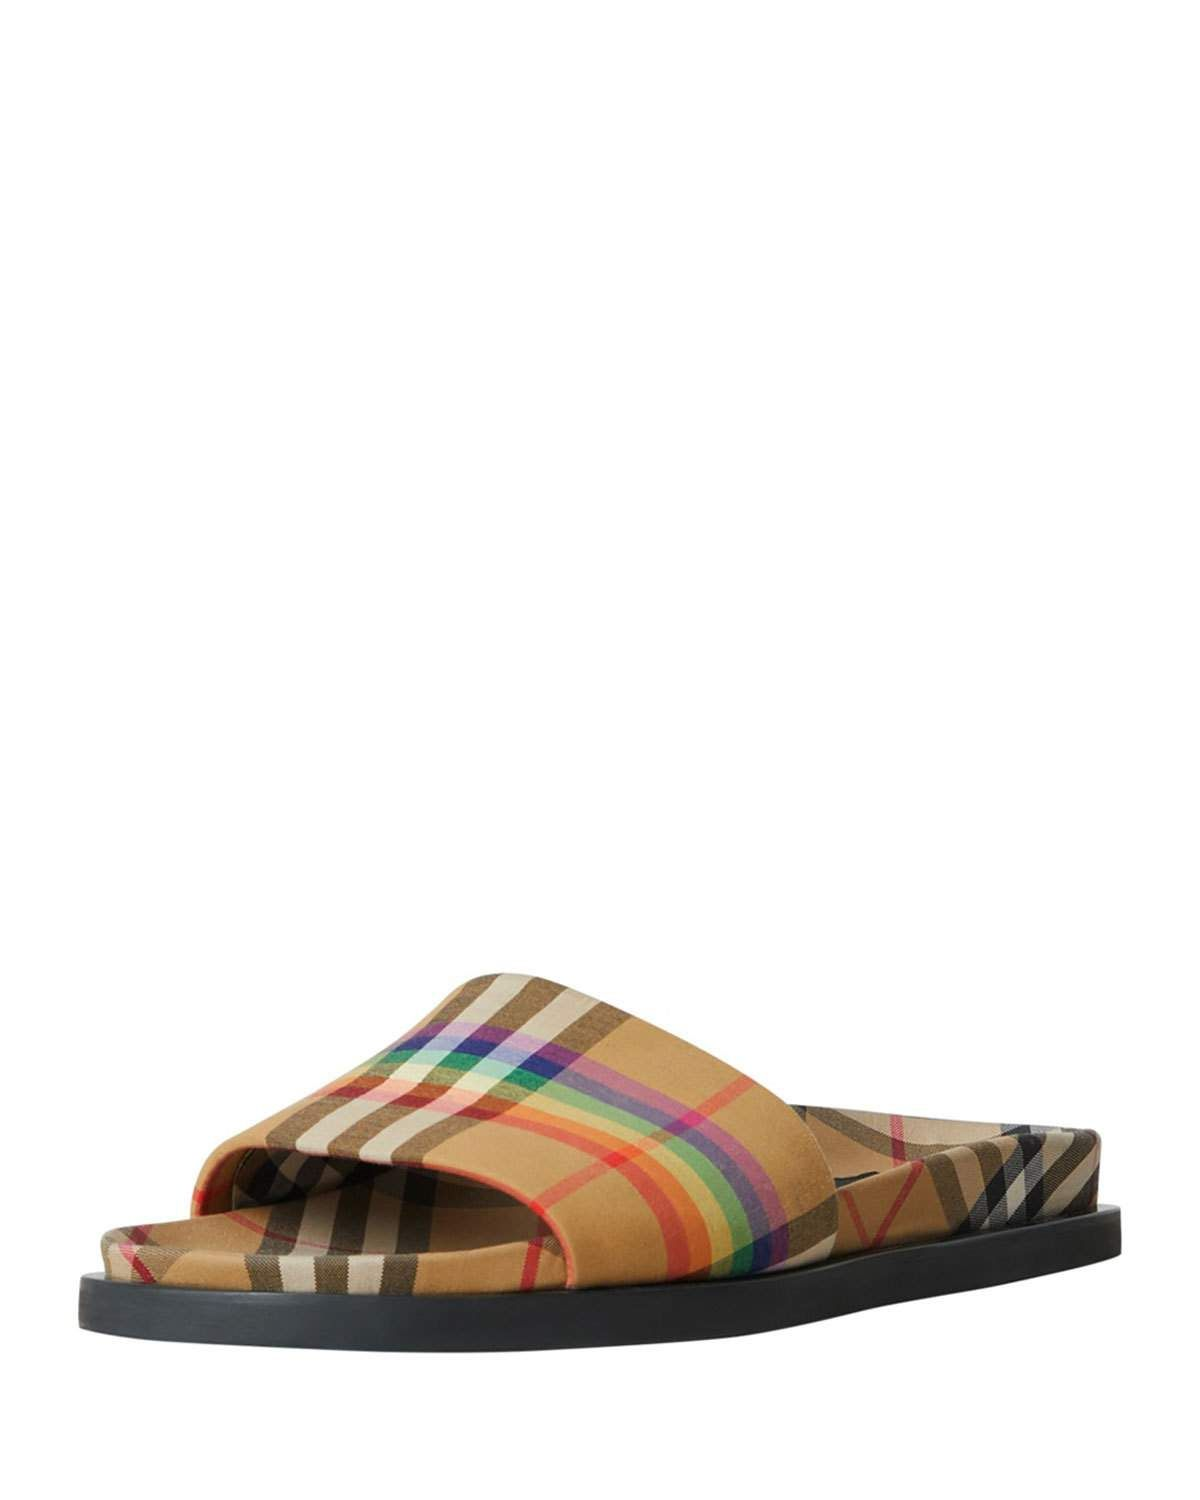 1d6c960f88ca58 Burberry Ashmore Low-Top Rainbow Check Slide Sandal